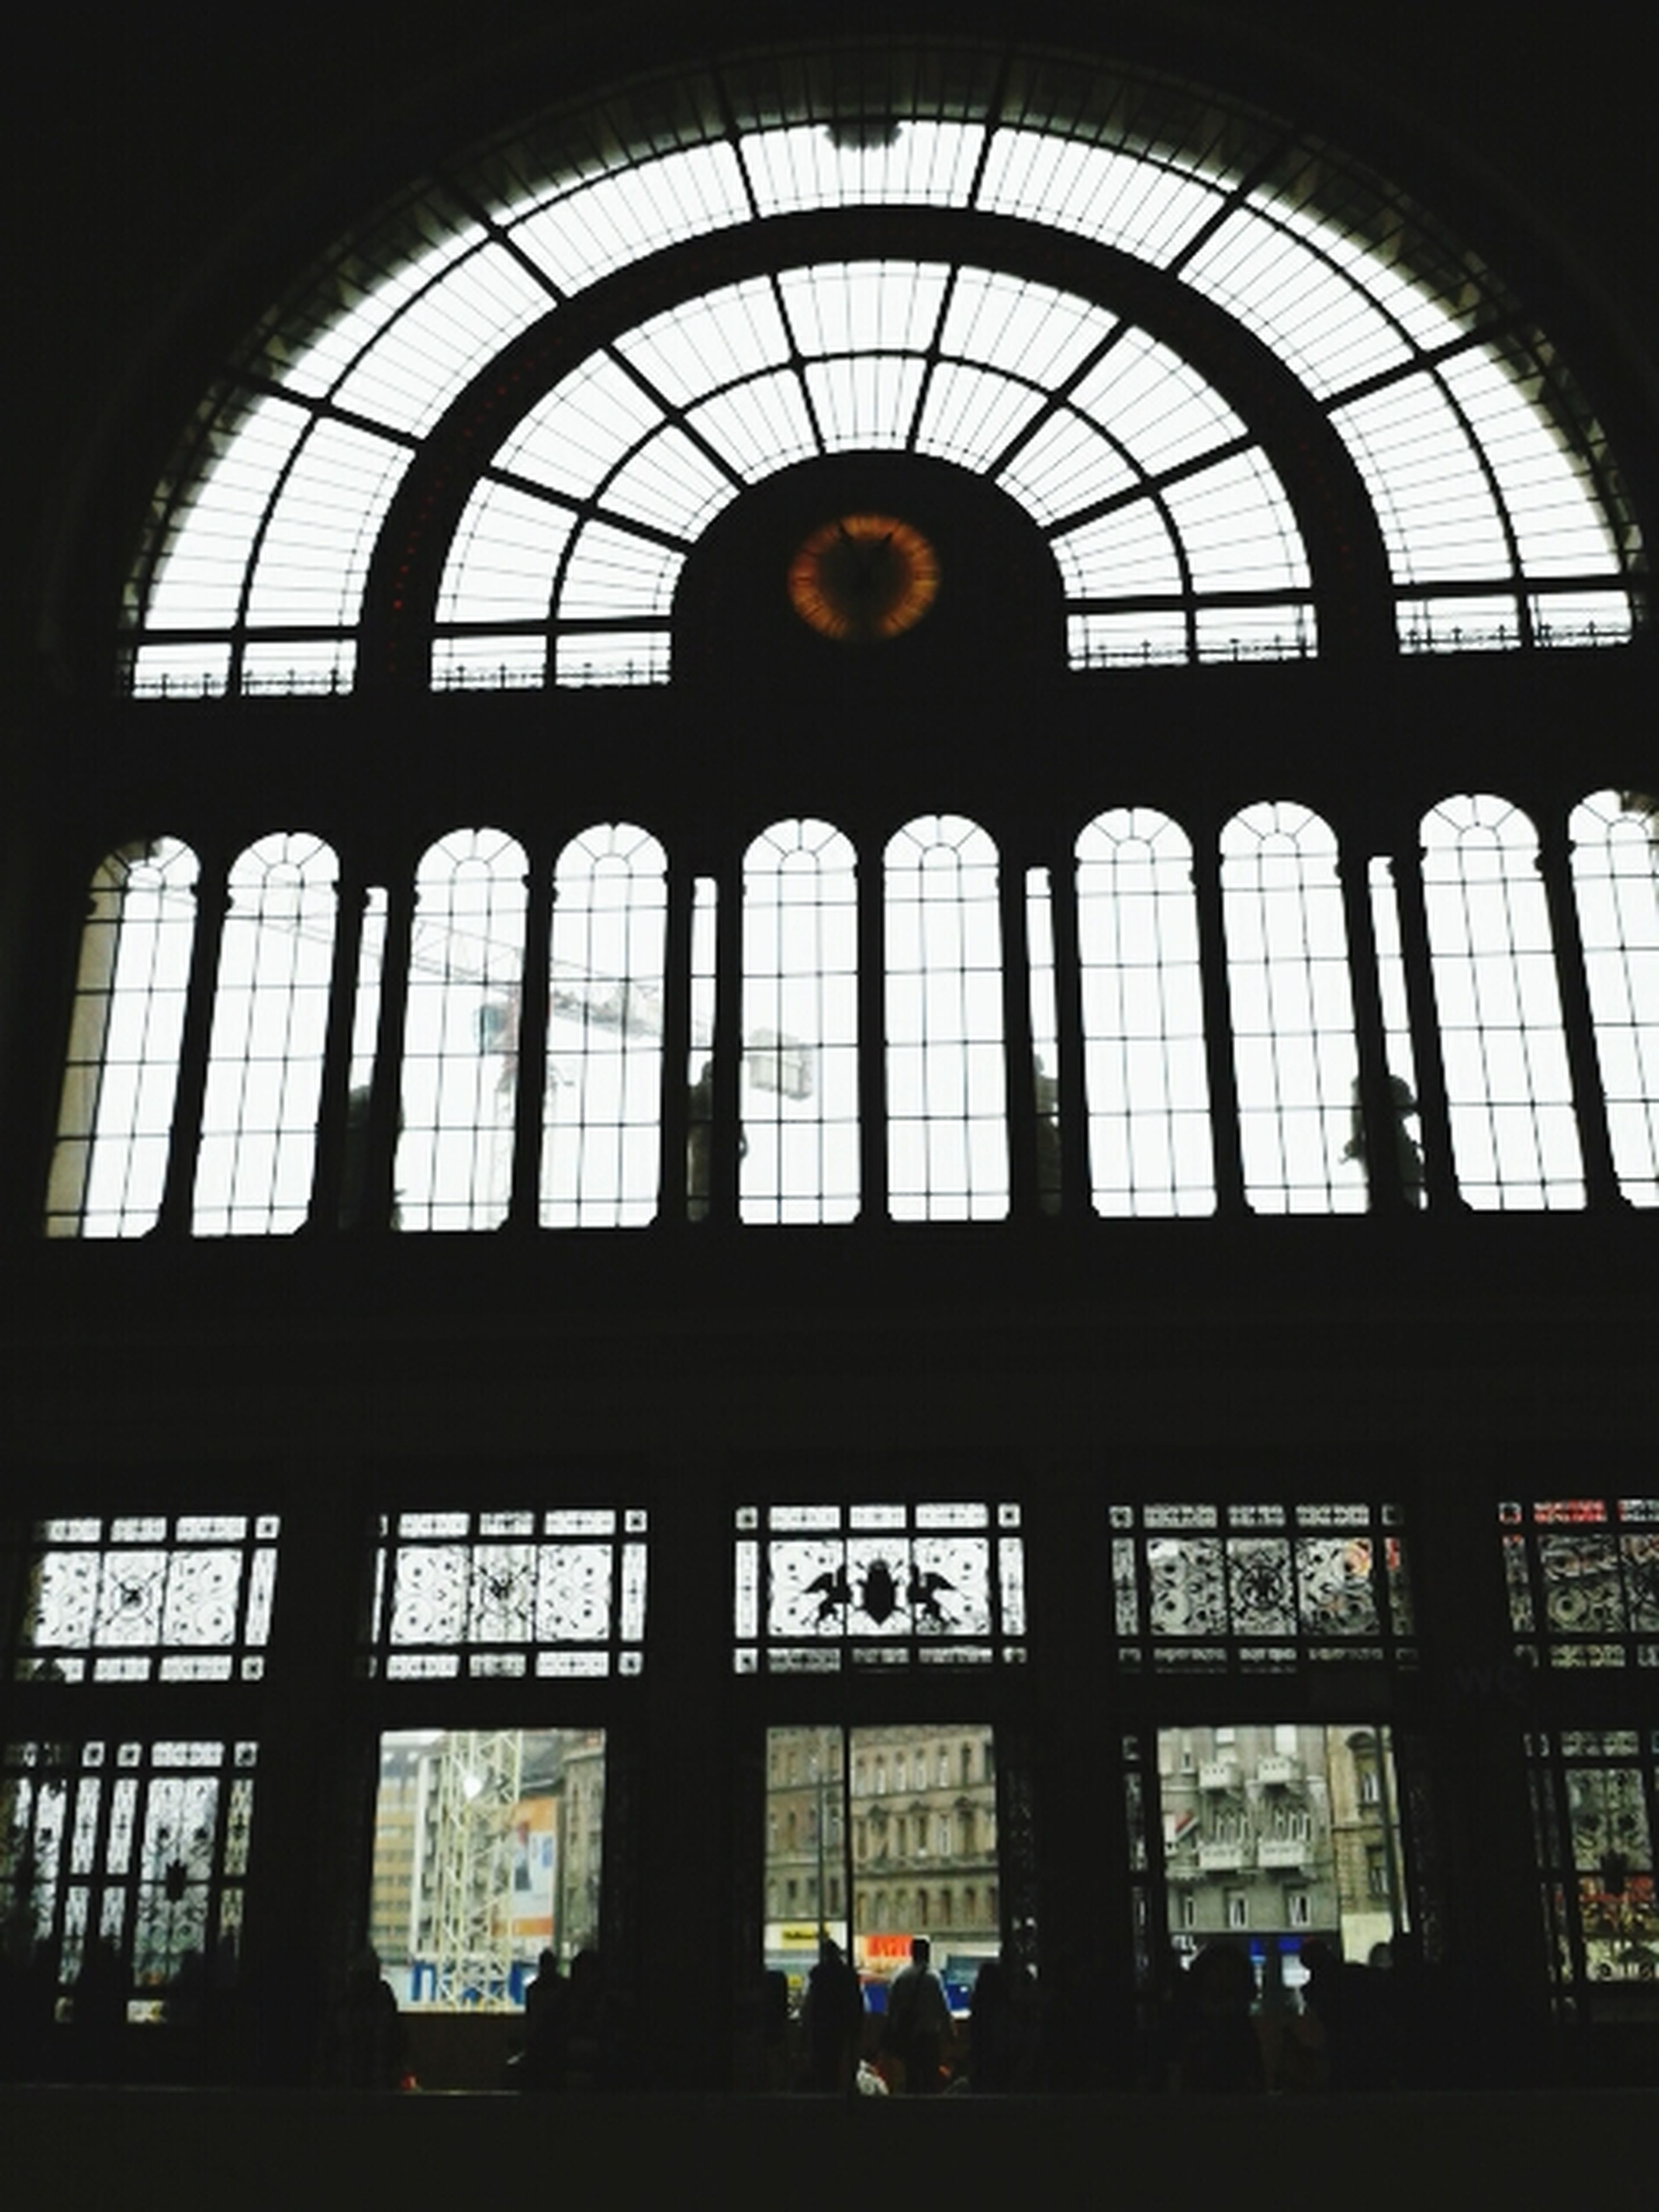 indoors, window, architecture, built structure, glass - material, arch, transparent, ceiling, interior, in a row, railroad station, low angle view, day, silhouette, building, no people, repetition, reflection, skylight, pattern